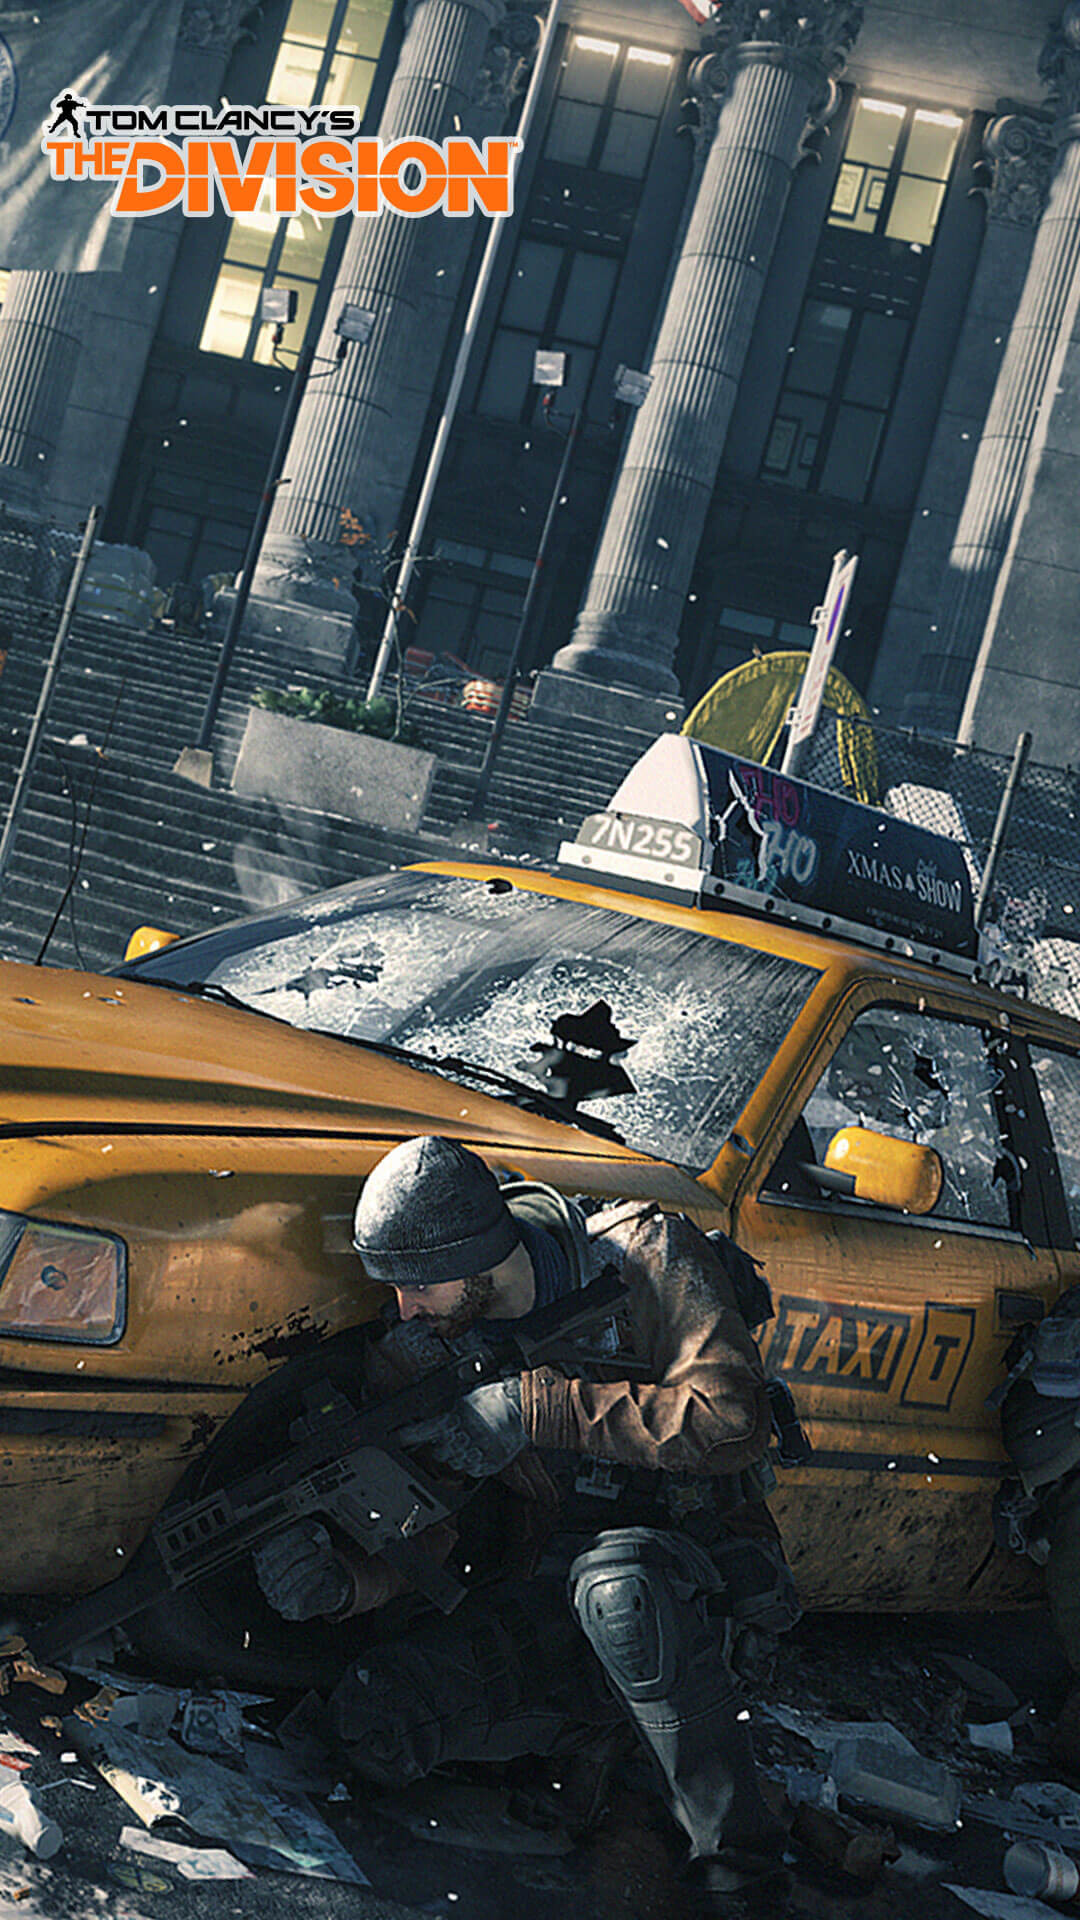 The Division Wallpaper iPhone 6 HD | Games Wallpaper for iPhone | Pinterest  | Division, Wallpaper and Gaming